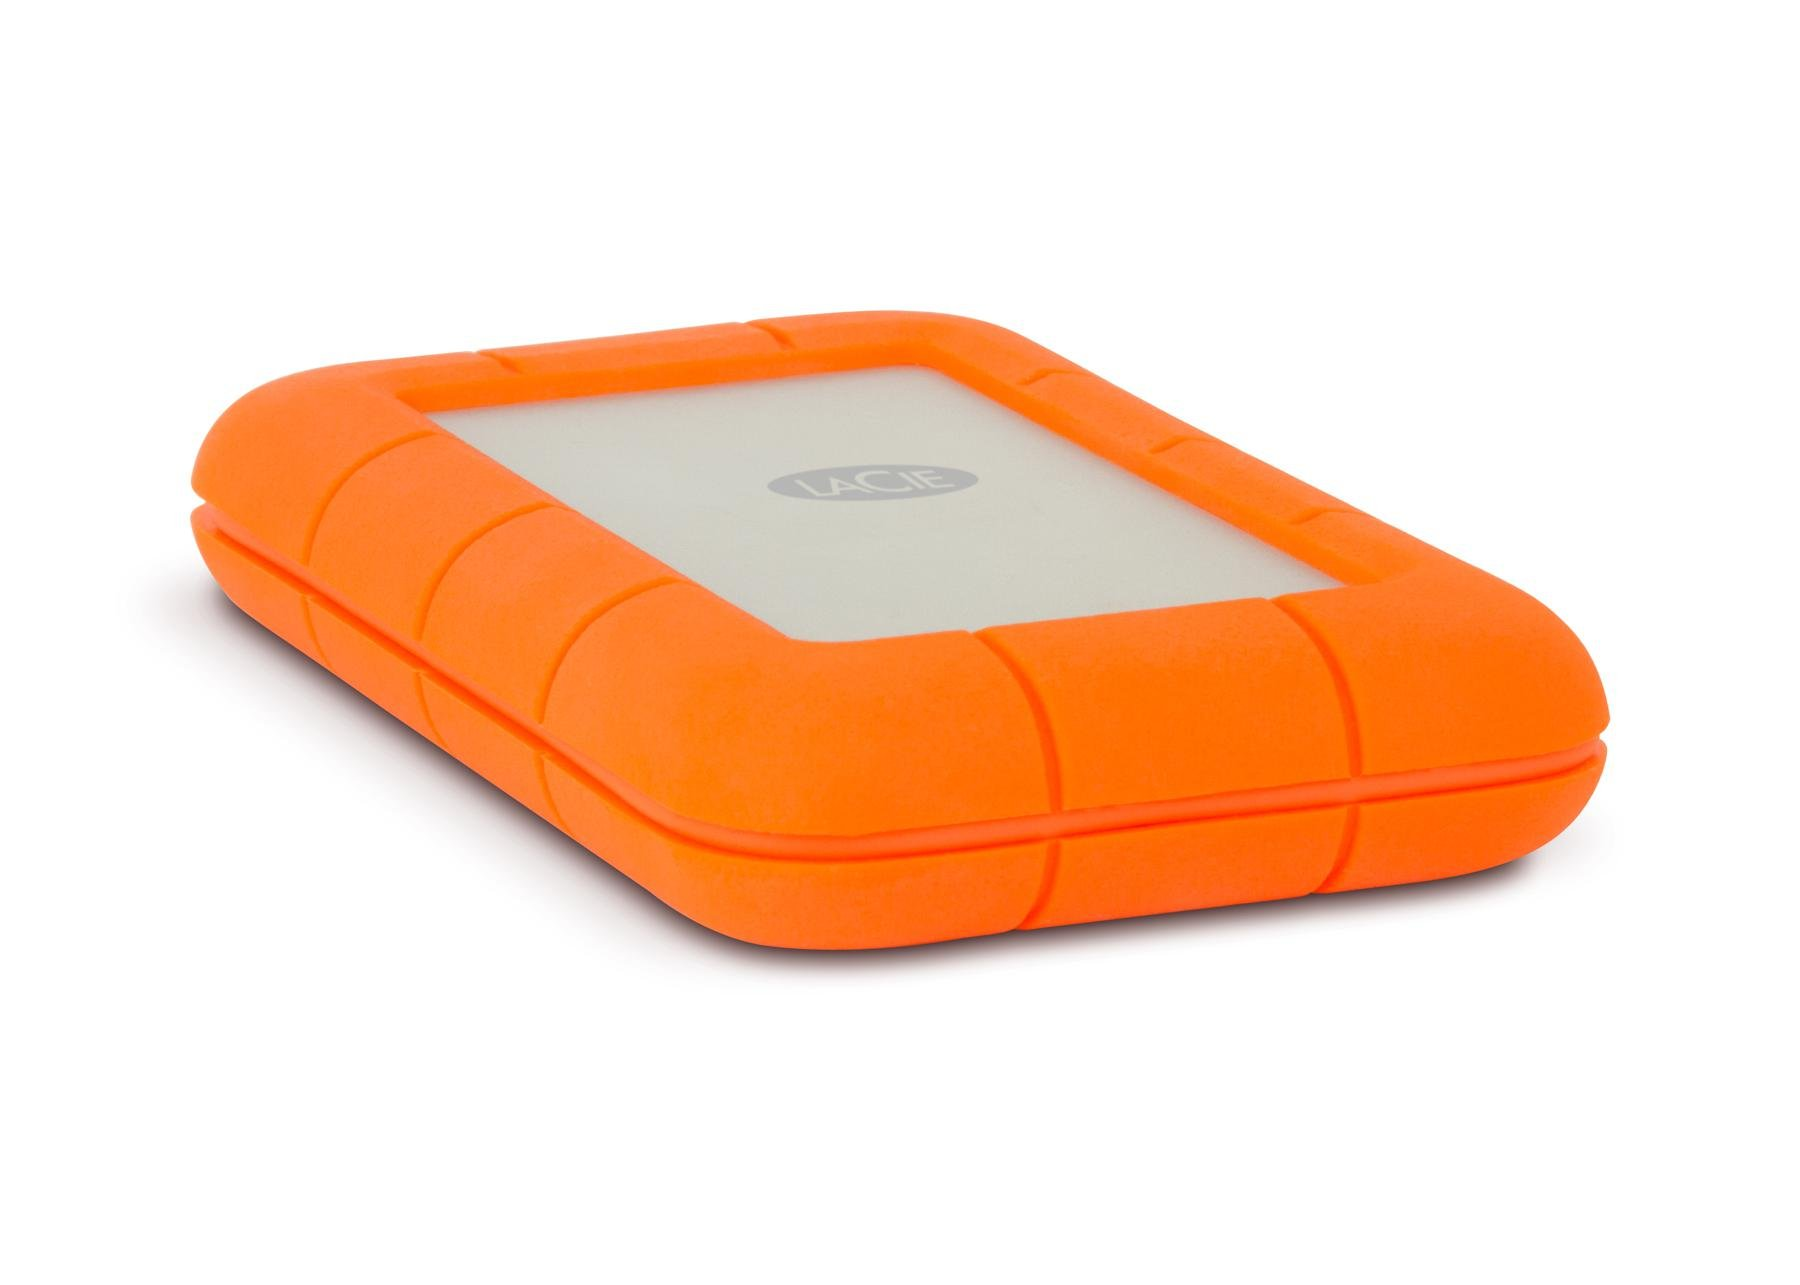 Lacie Rugged Thunderbolt Usb 3 0 1tb Portable Hard Drive Image 1